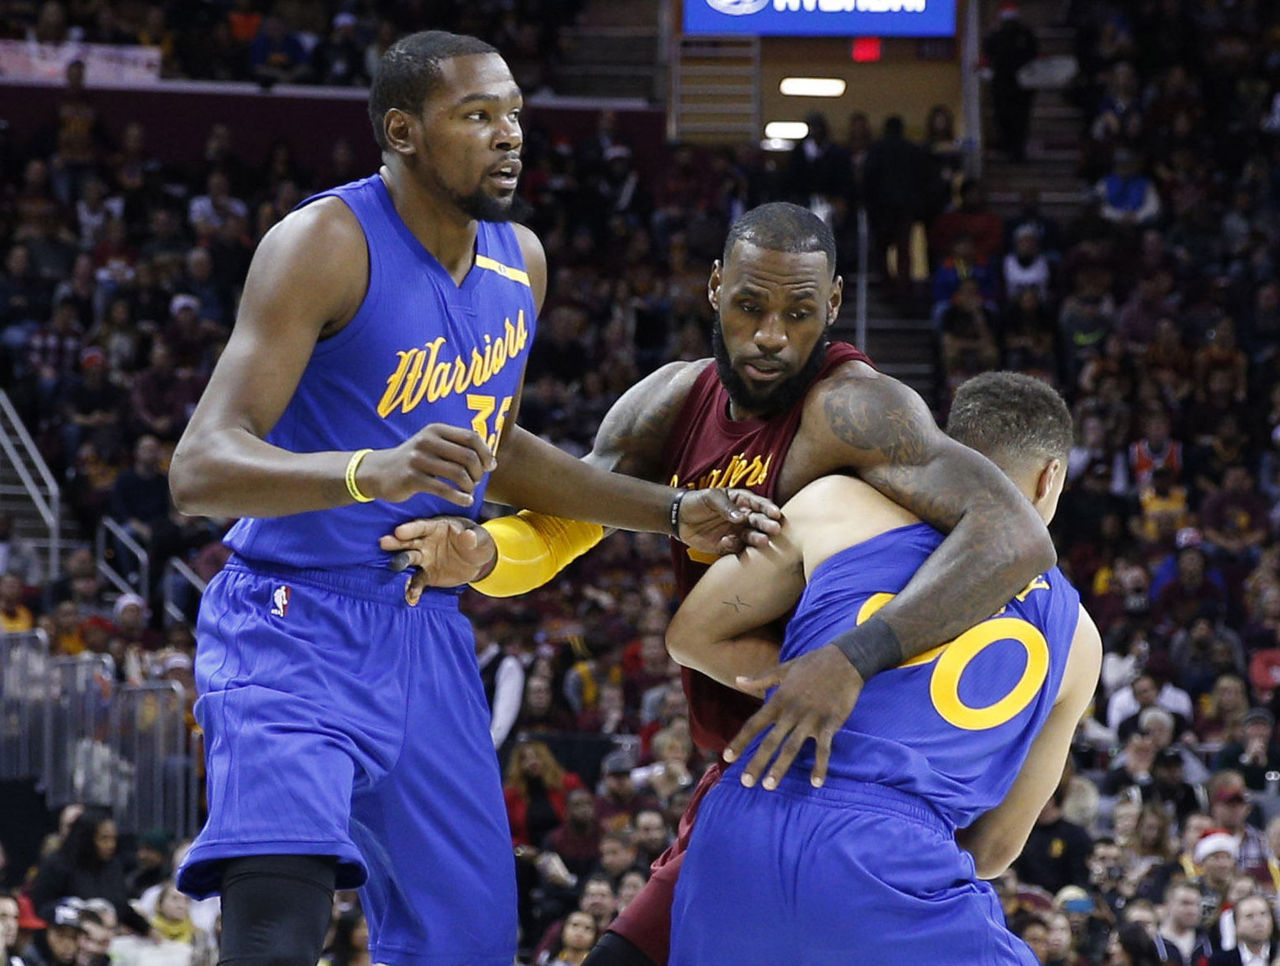 Cropped 2016 12 25t204305z 1183101781 nocid rtrmadp 3 nba golden state warriors at cleveland cavaliers